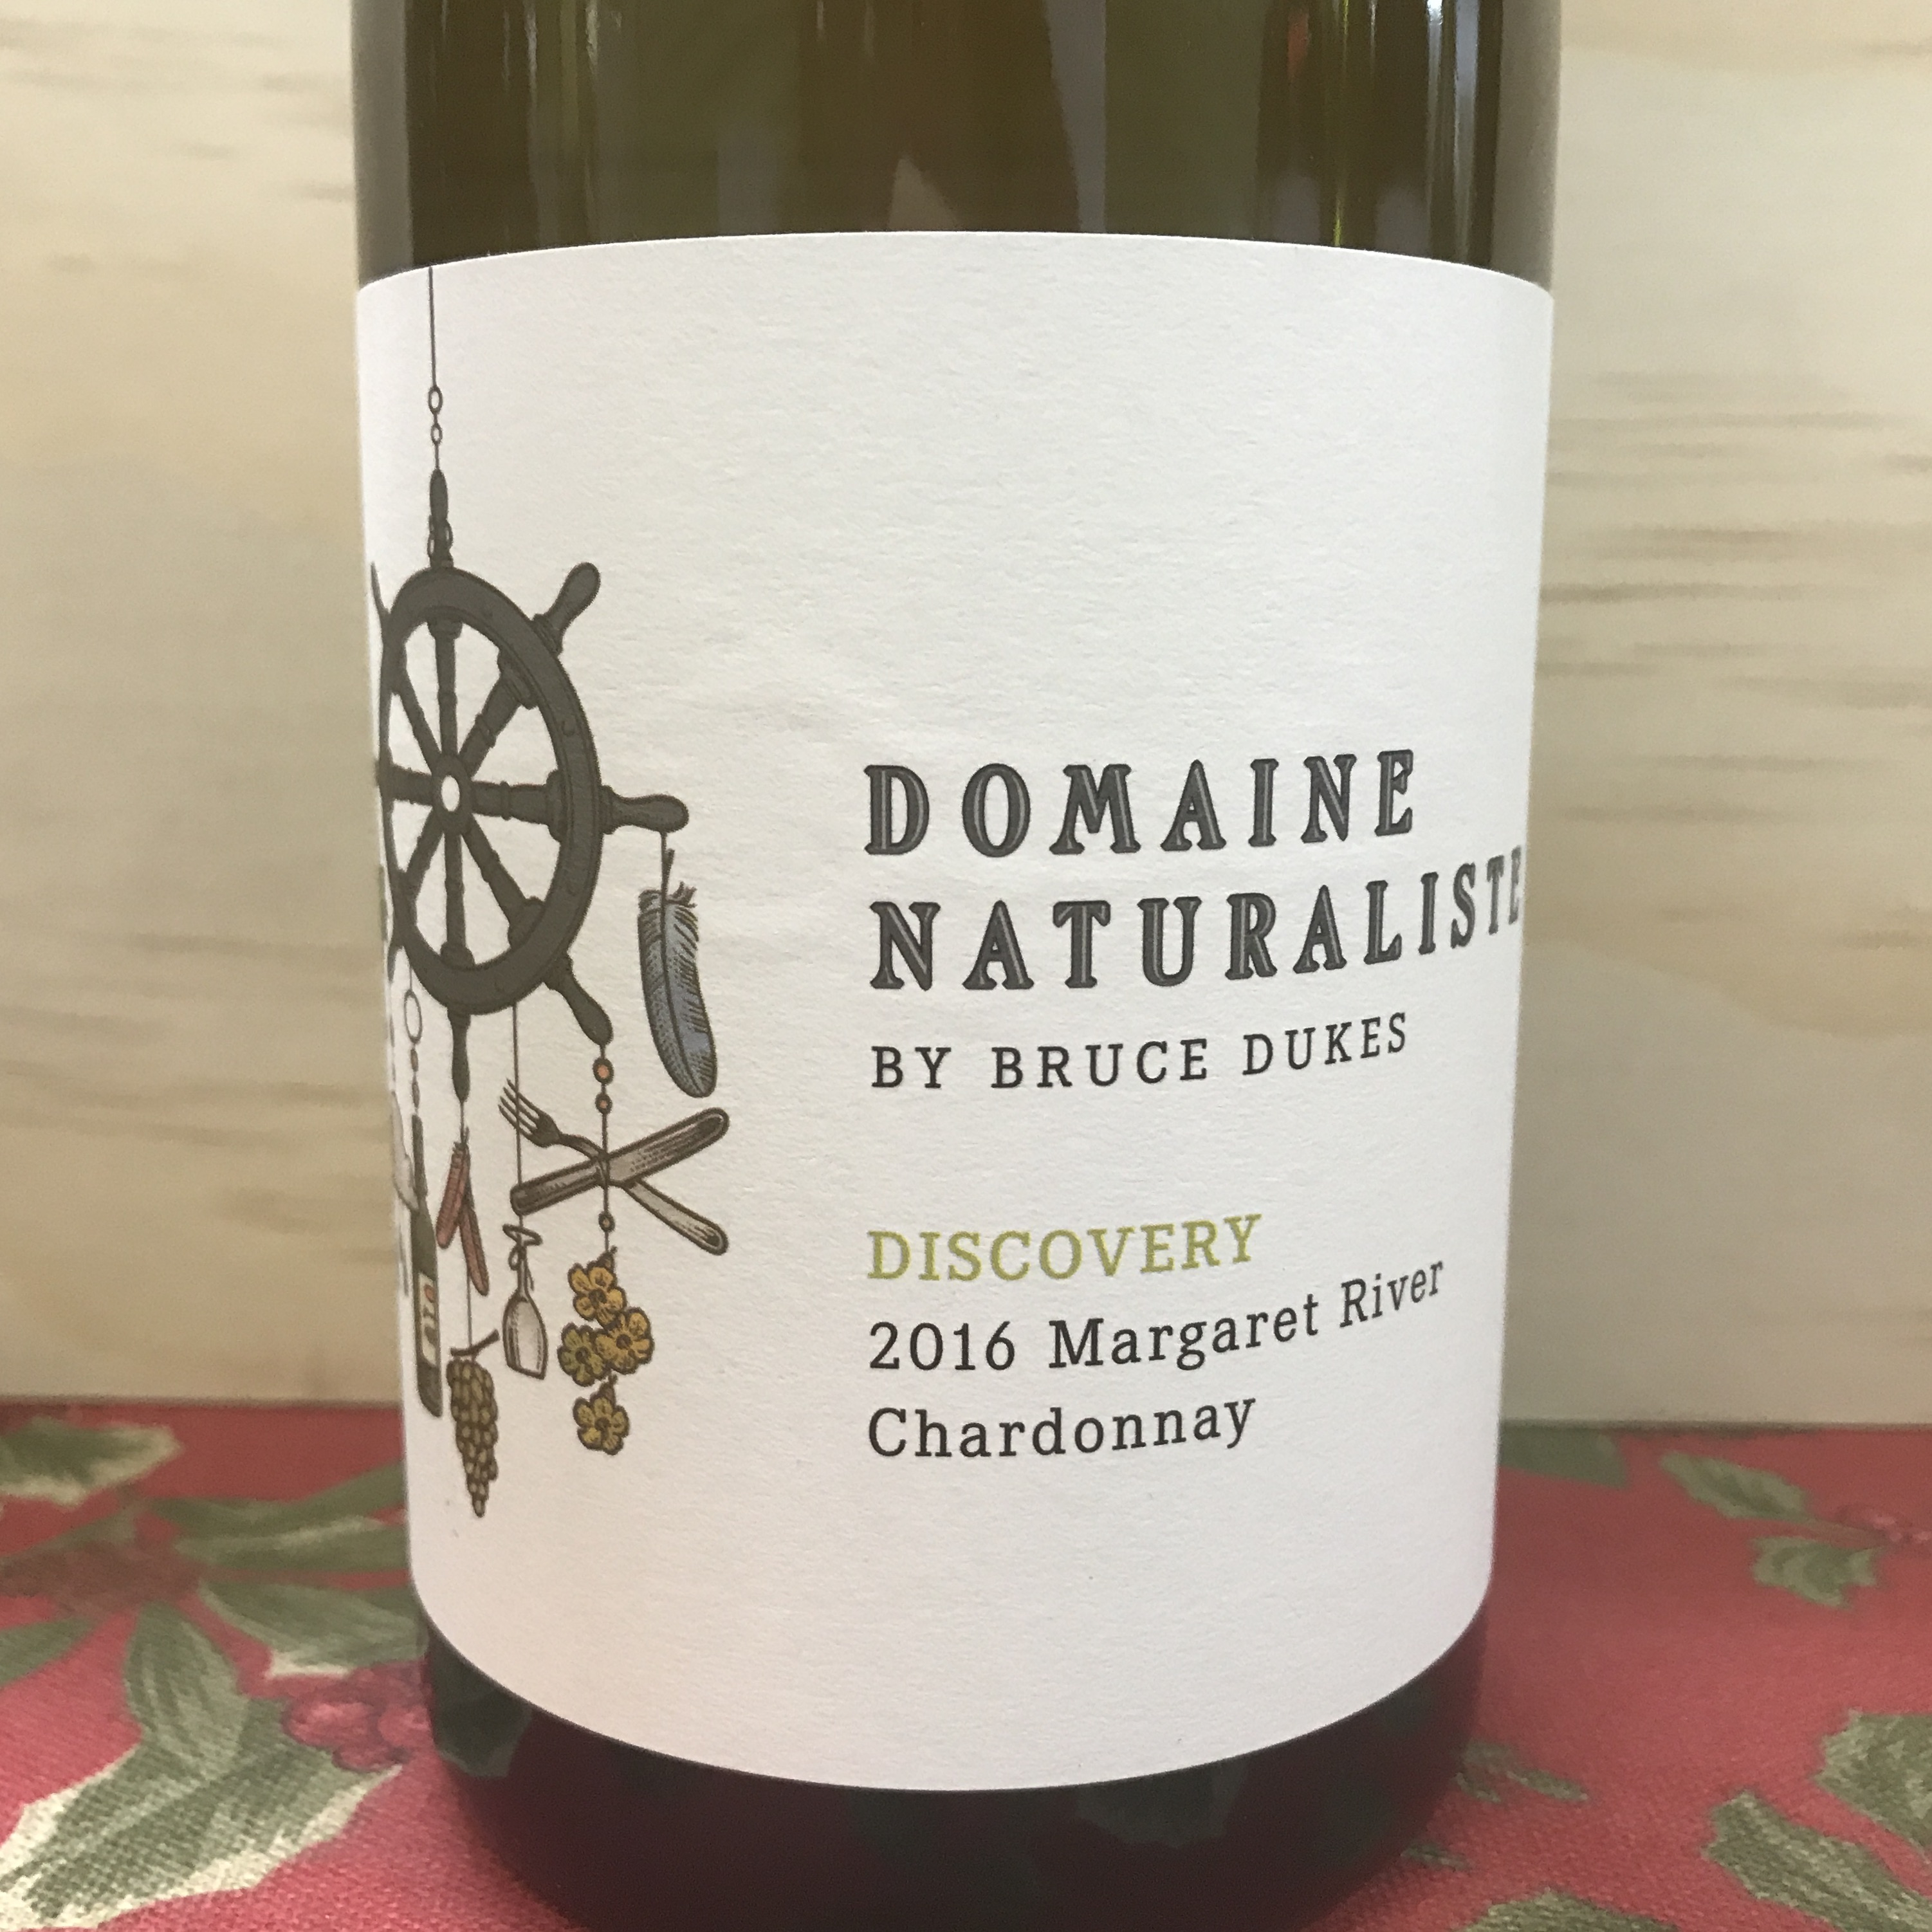 Domaine Naturaliste Discovery Margaret River Chardonnay 2016